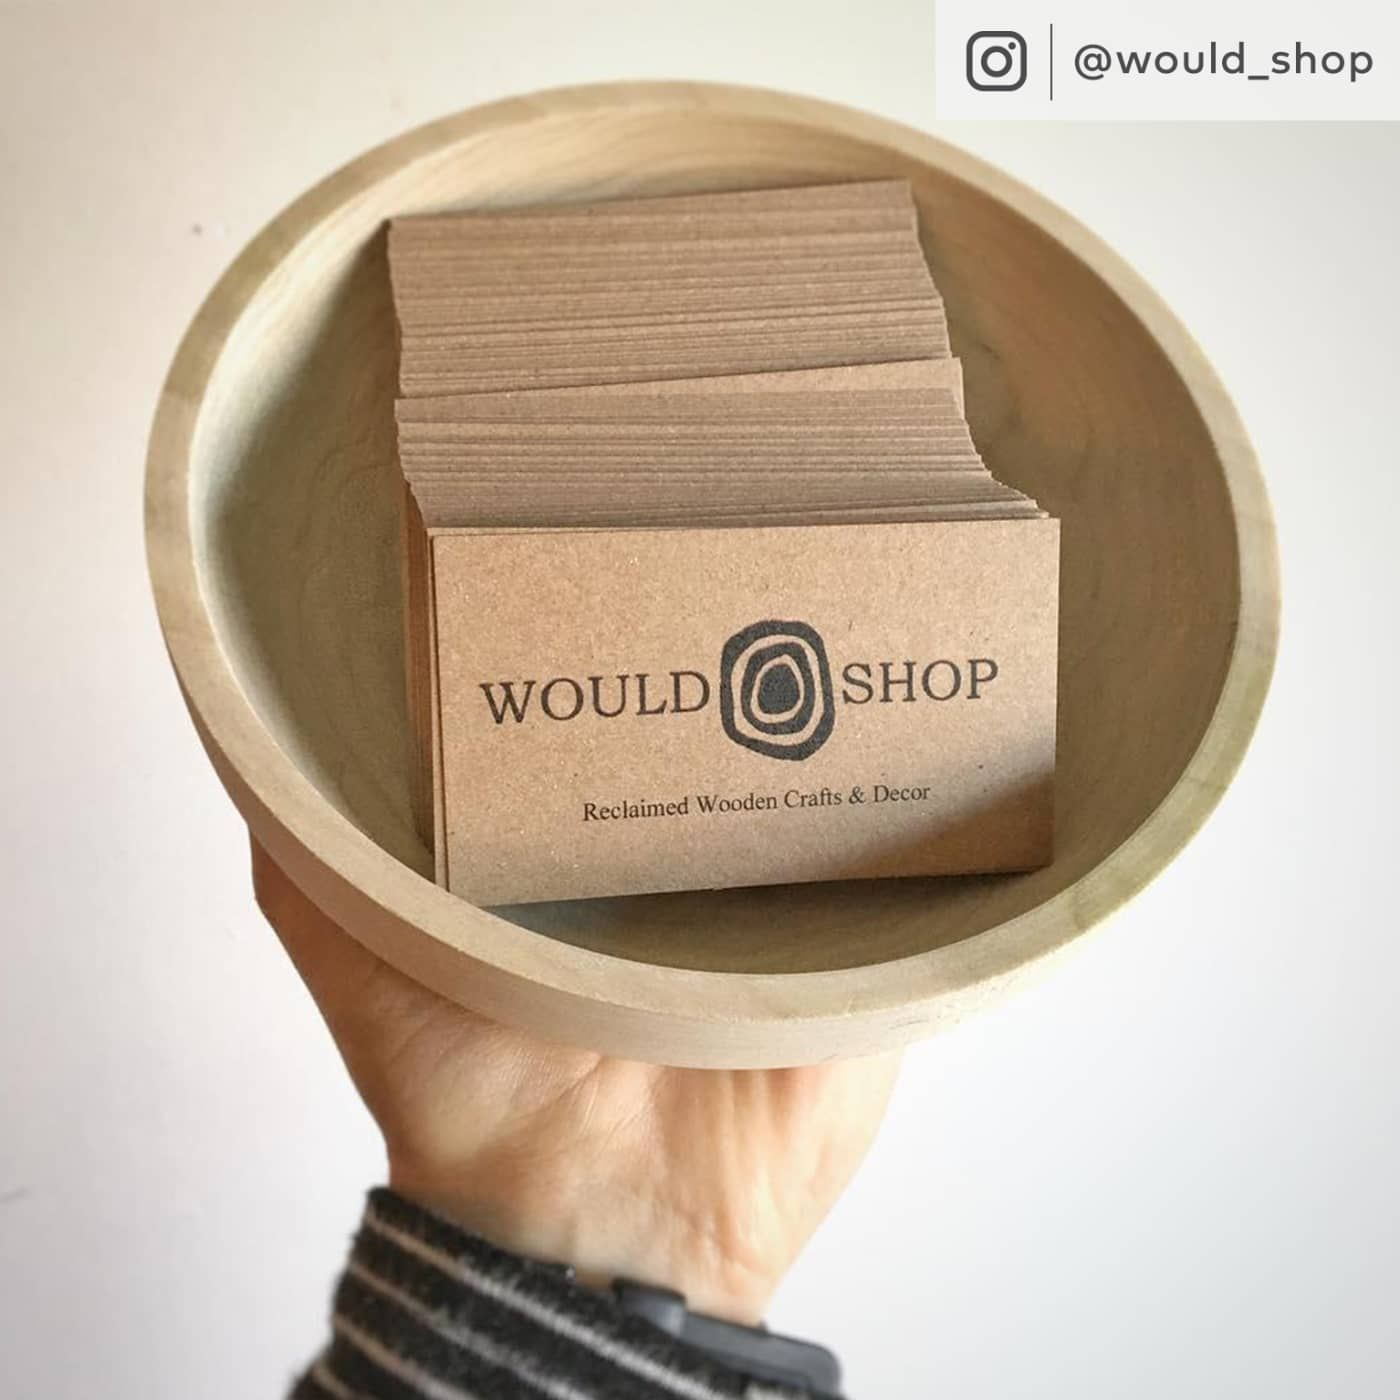 Kraft Paper Business Cards Eco Friendly Cards Vistaprint Kraft Business Cards Eco Friendly Cards Eco Friendly Business Cards